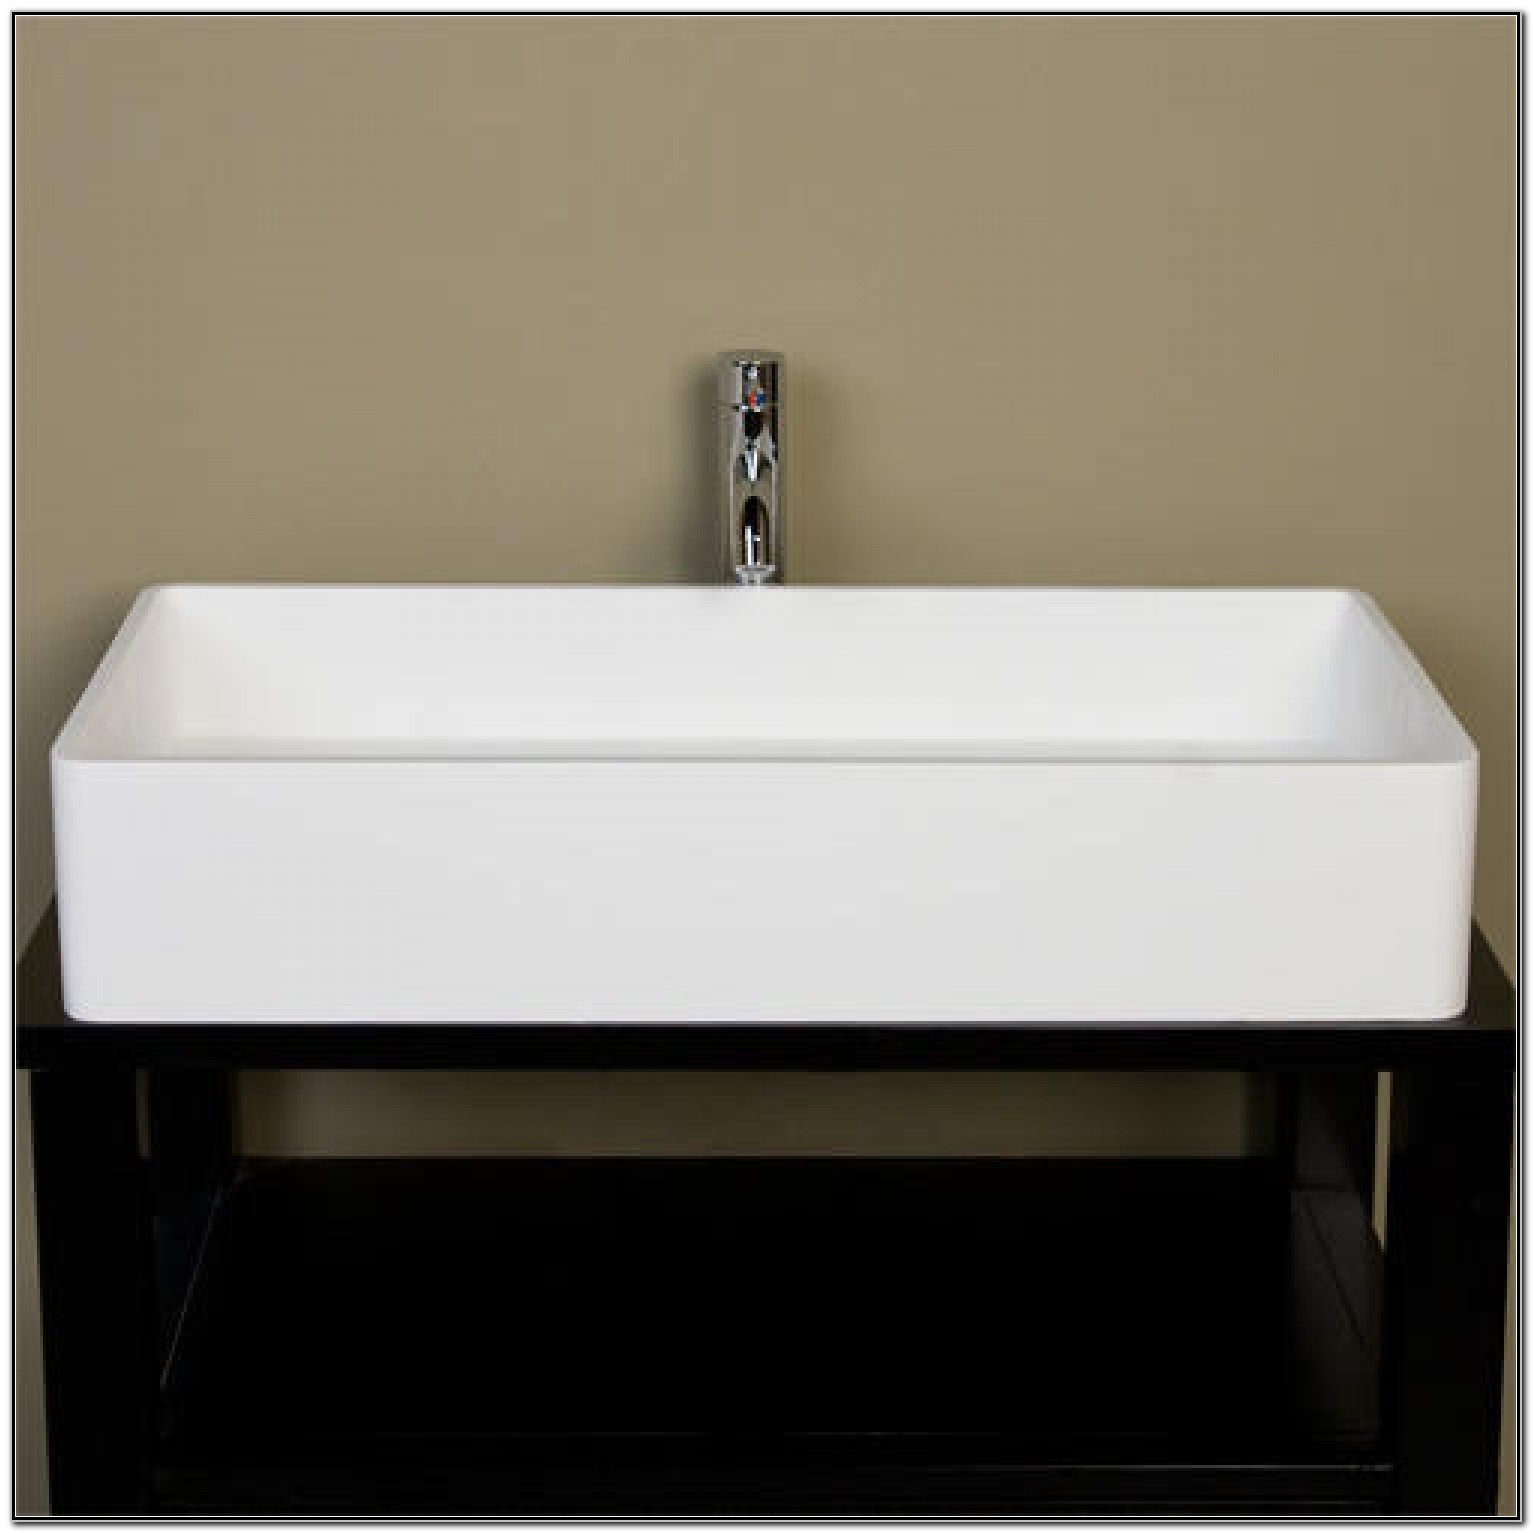 Small White Rectangular Vessel Sink